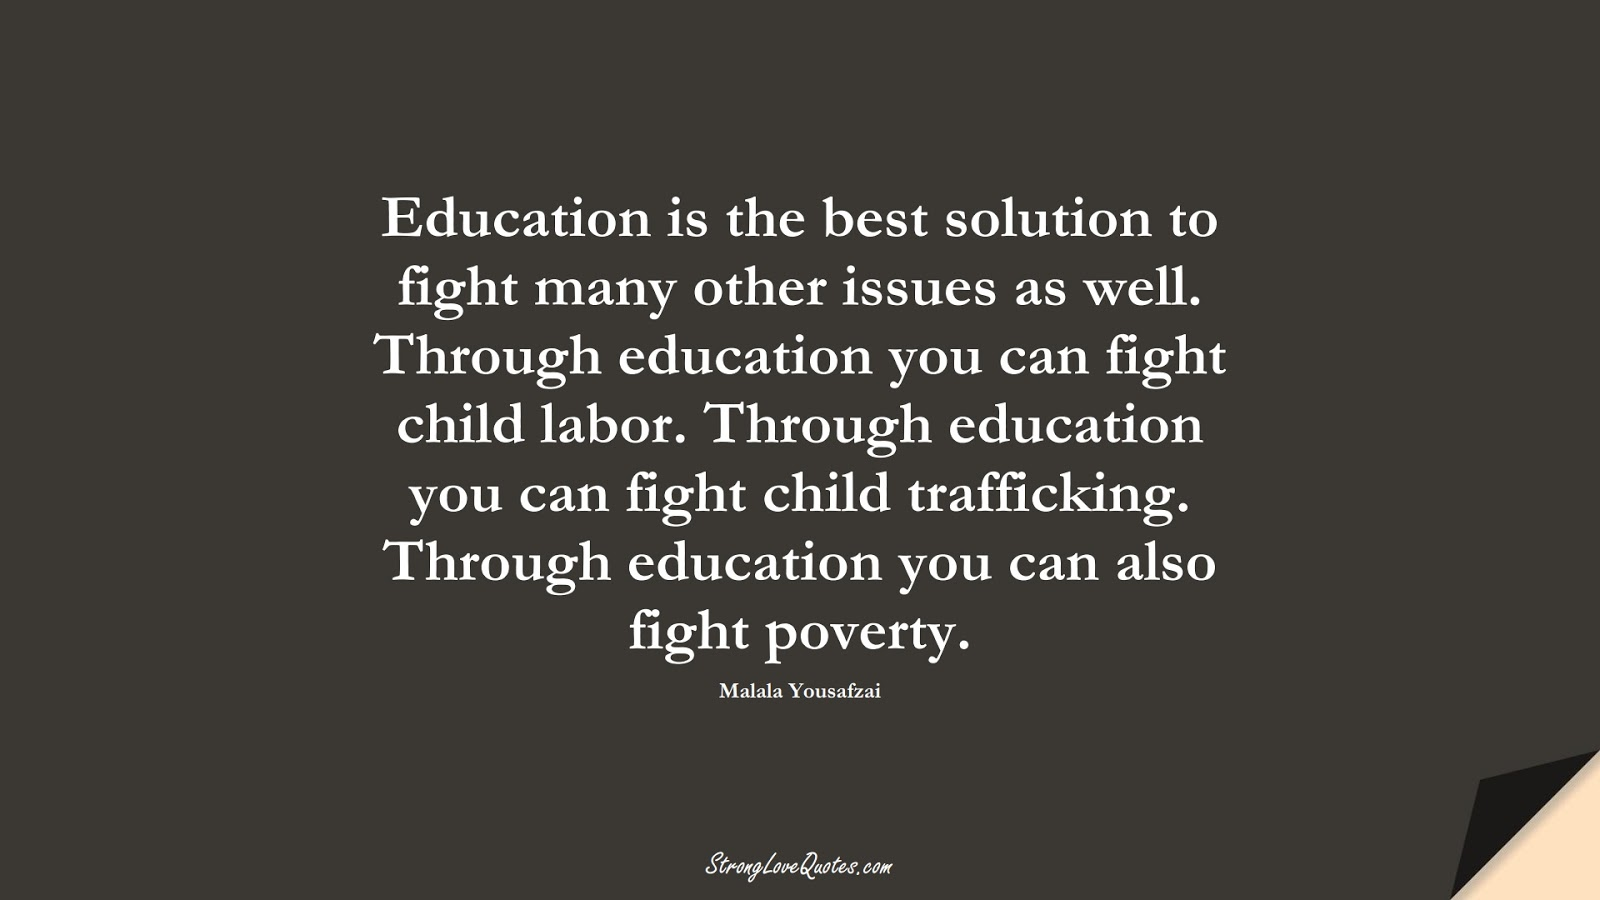 Education is the best solution to fight many other issues as well. Through education you can fight child labor. Through education you can fight child trafficking. Through education you can also fight poverty. (Malala Yousafzai);  #EducationQuotes